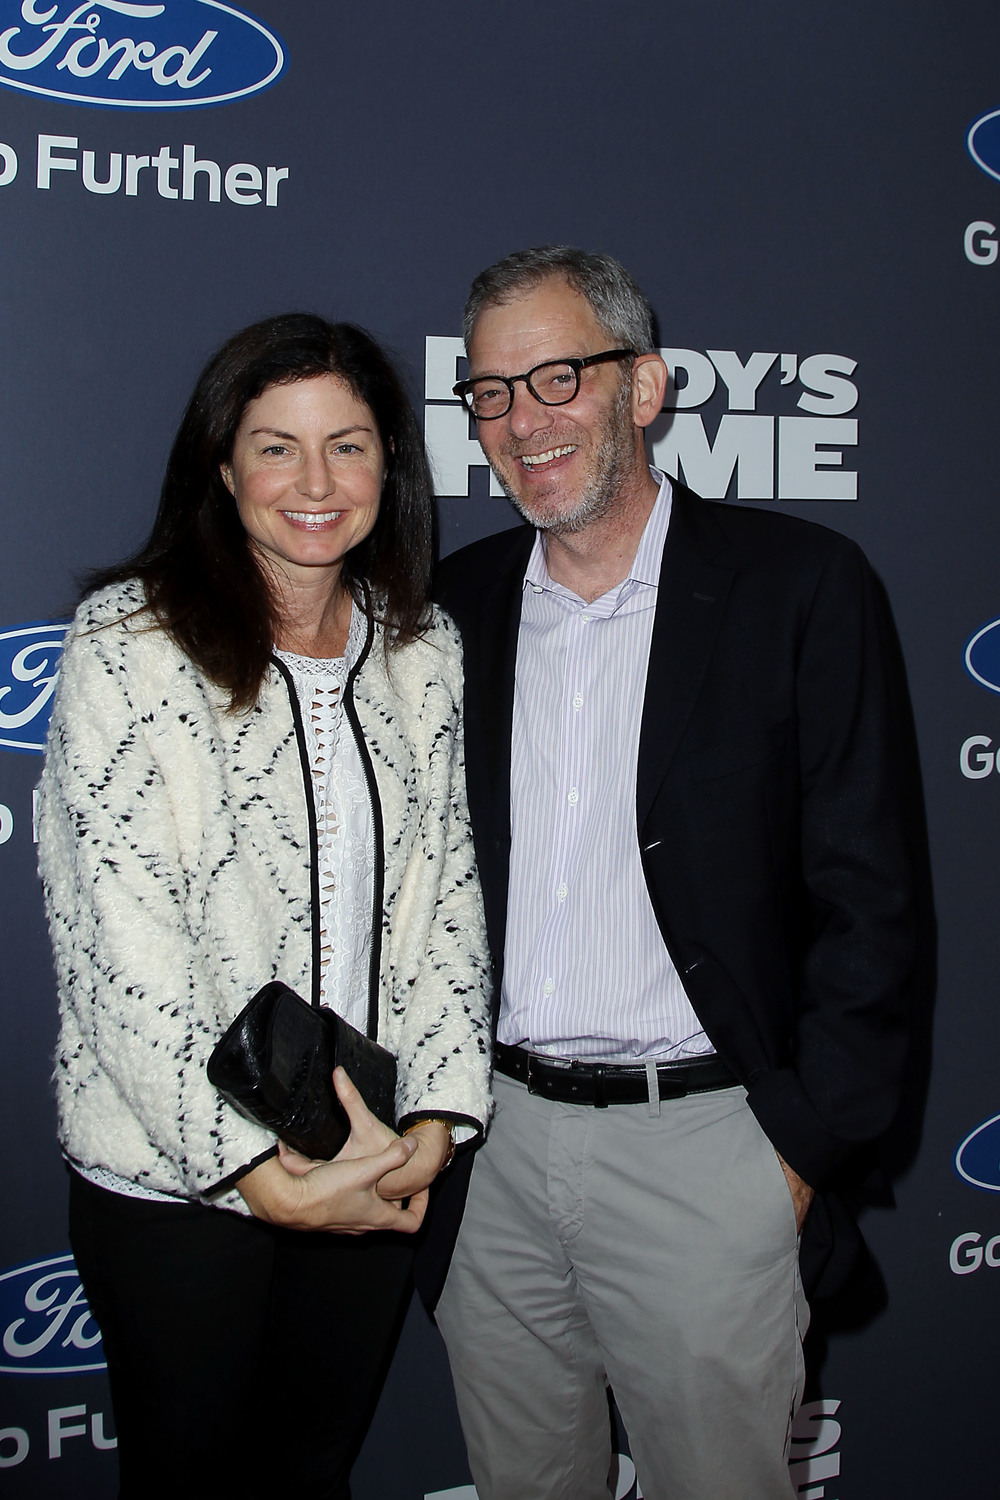 Randy-Hermann-and-wife-Red-Granite-Pictures-Daddys-Home-New-York-Premiere.JPG